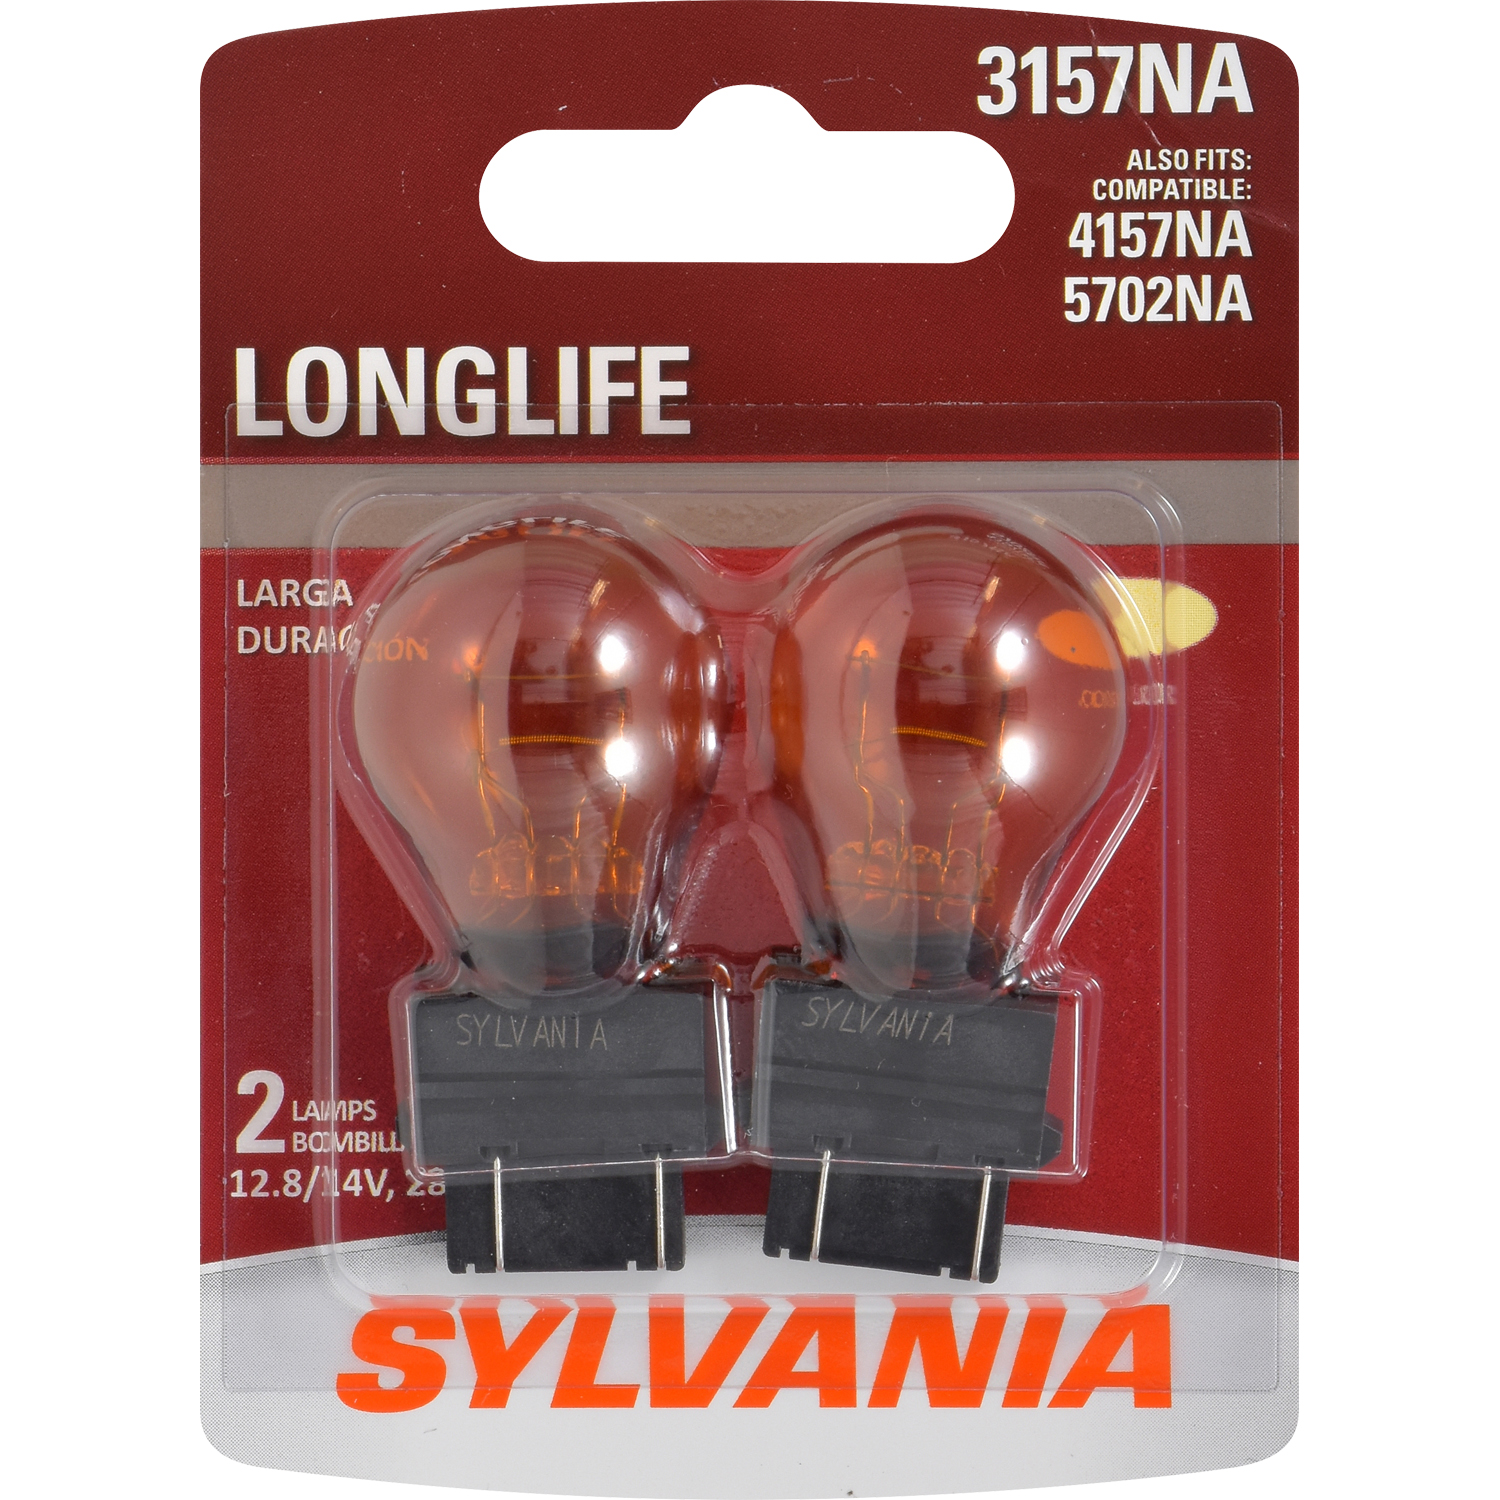 SYLVANIA 3157A Long Life Mini Bulb, Pack of 2